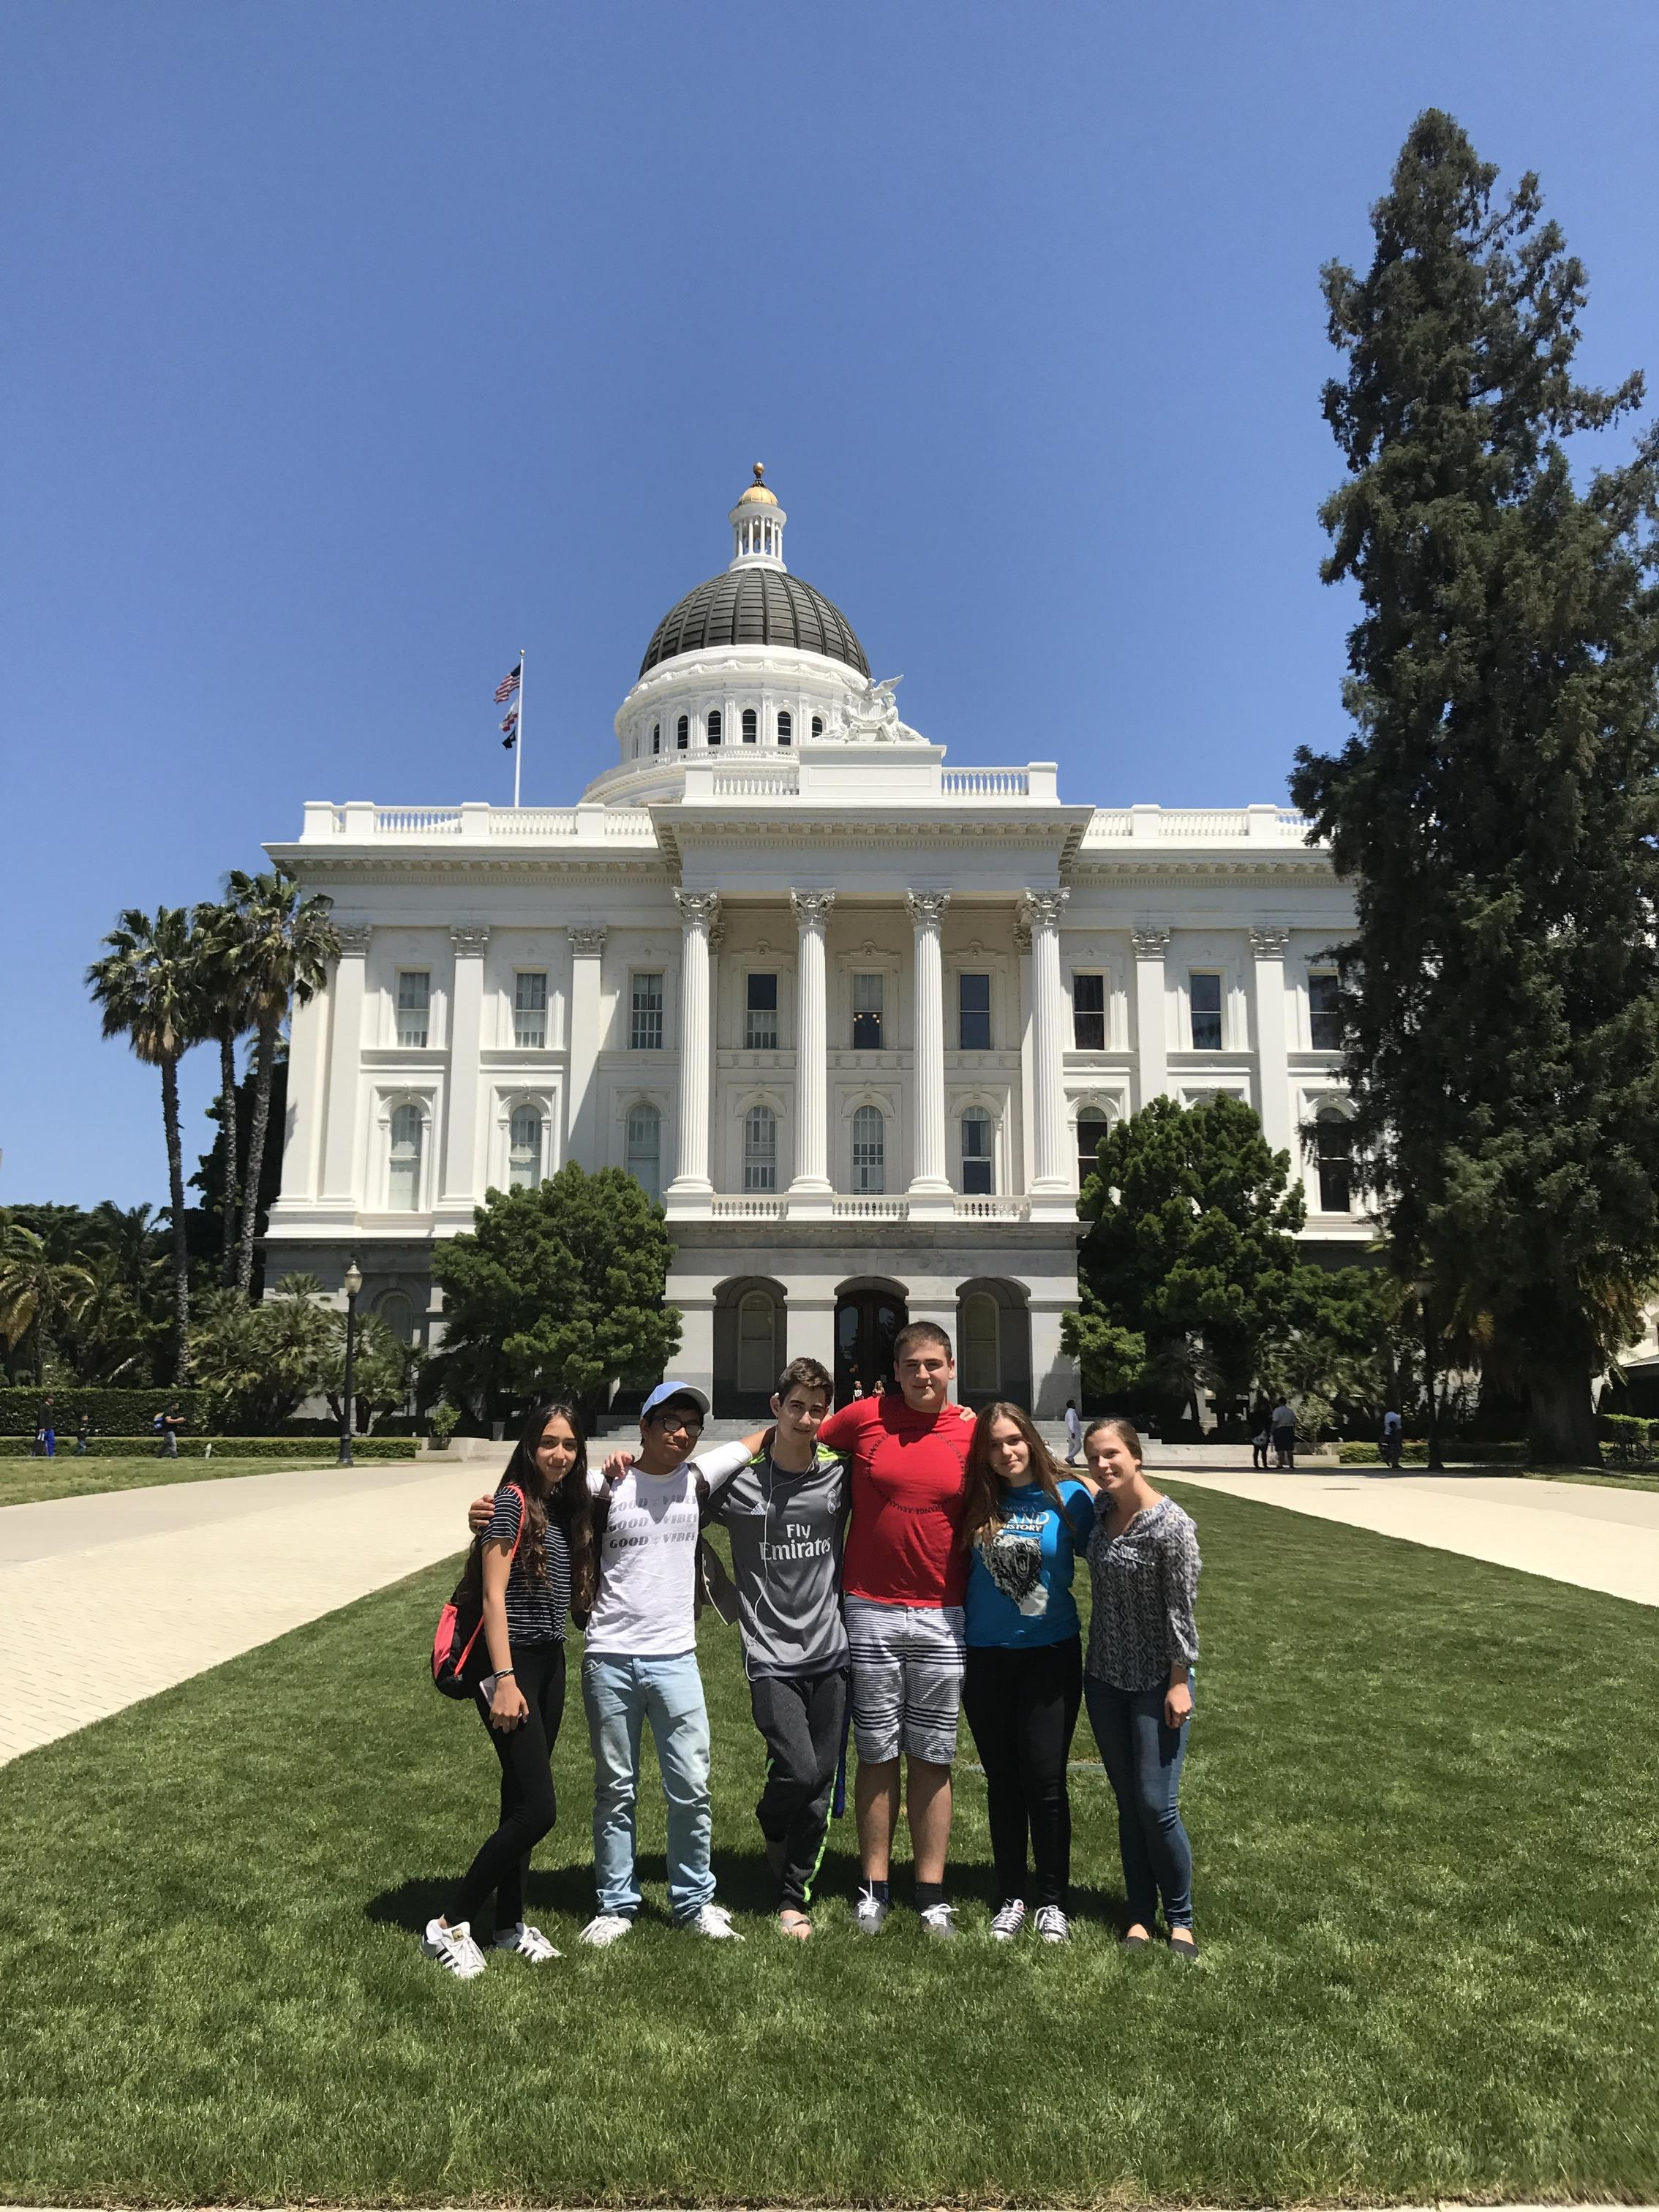 Students in front of state capital building